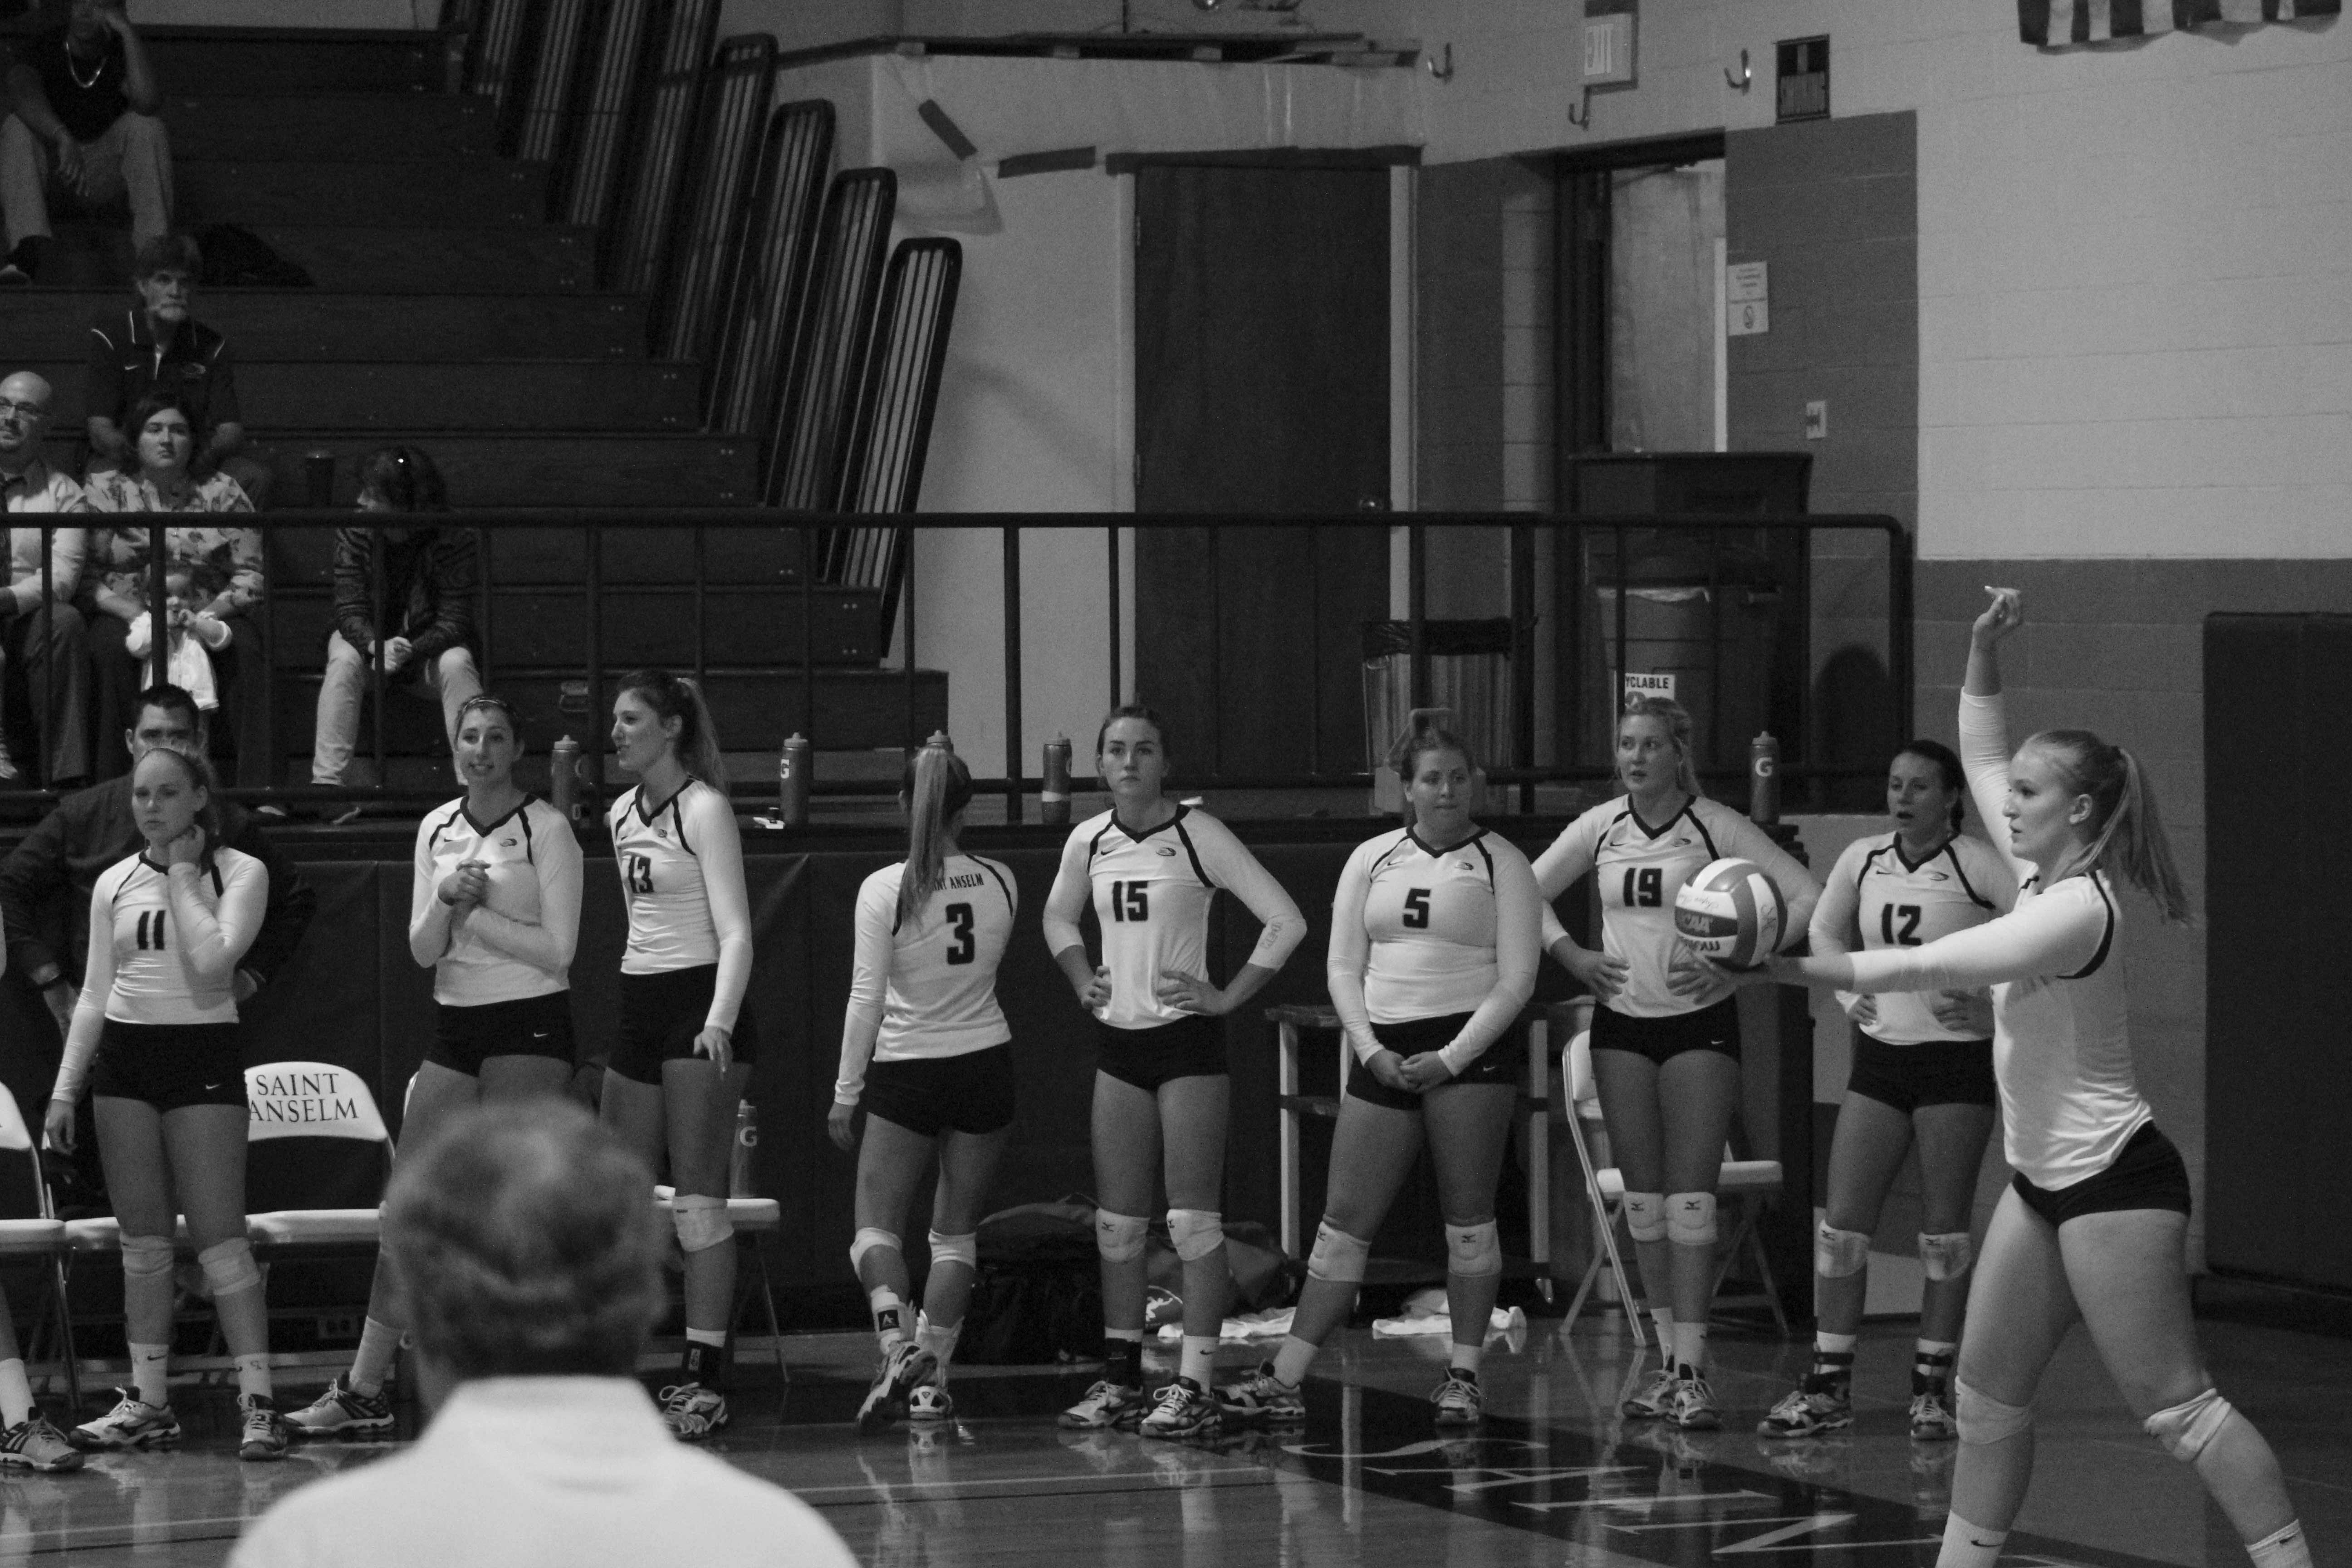 Volleyball players on the sideline look on as teammate Katy Teets is about serve to SNHU on Oct. 4.